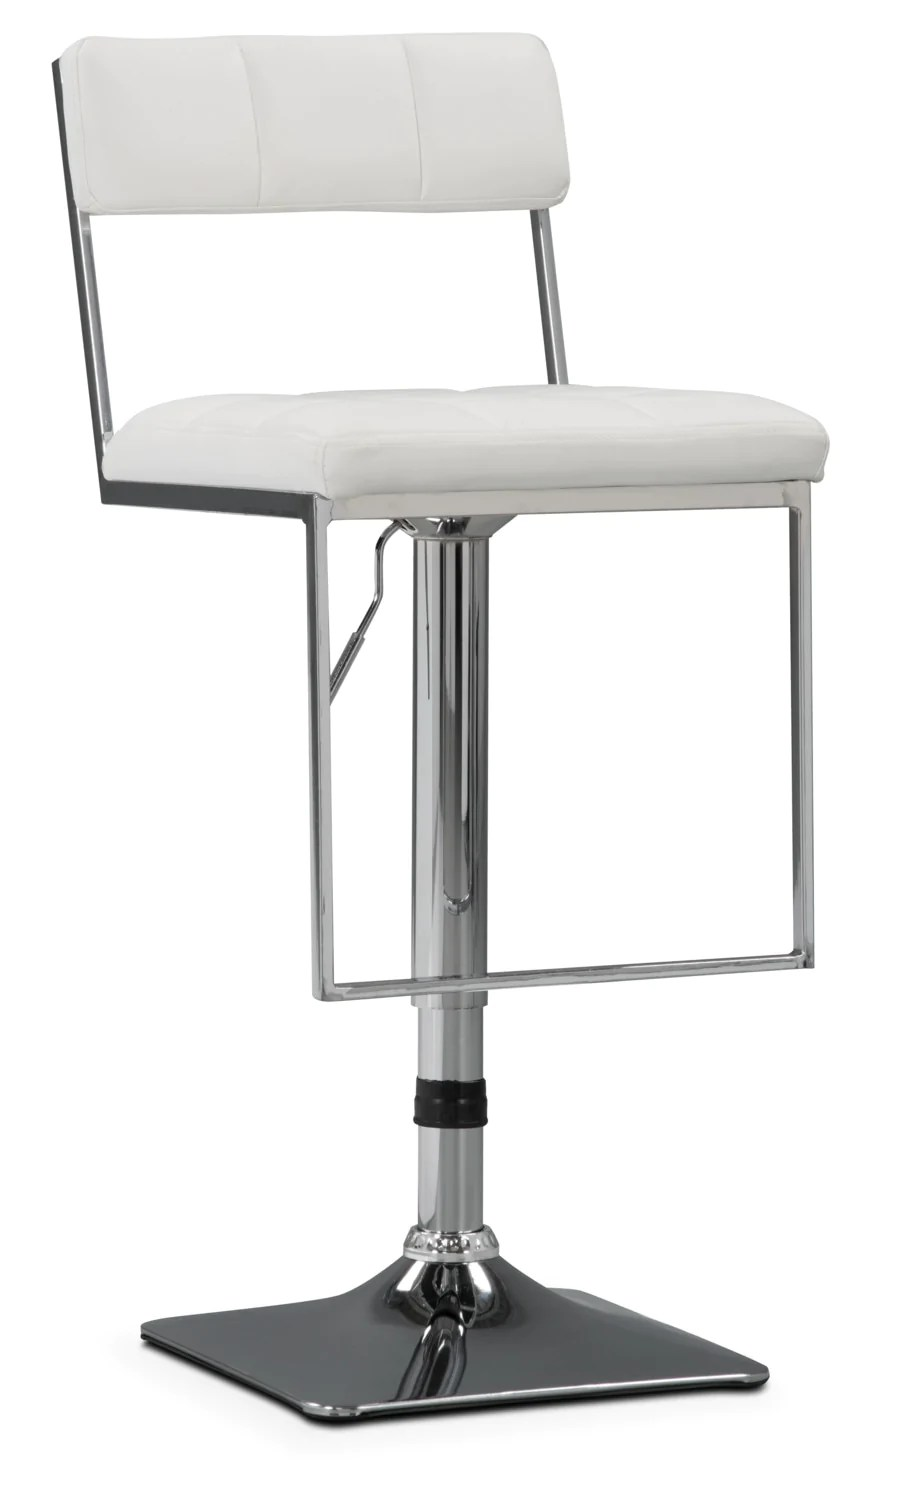 Tabouret Bar Reglable Tabouret Bar Large Et Réglable Corliving à Capitonnage Carré Blanc